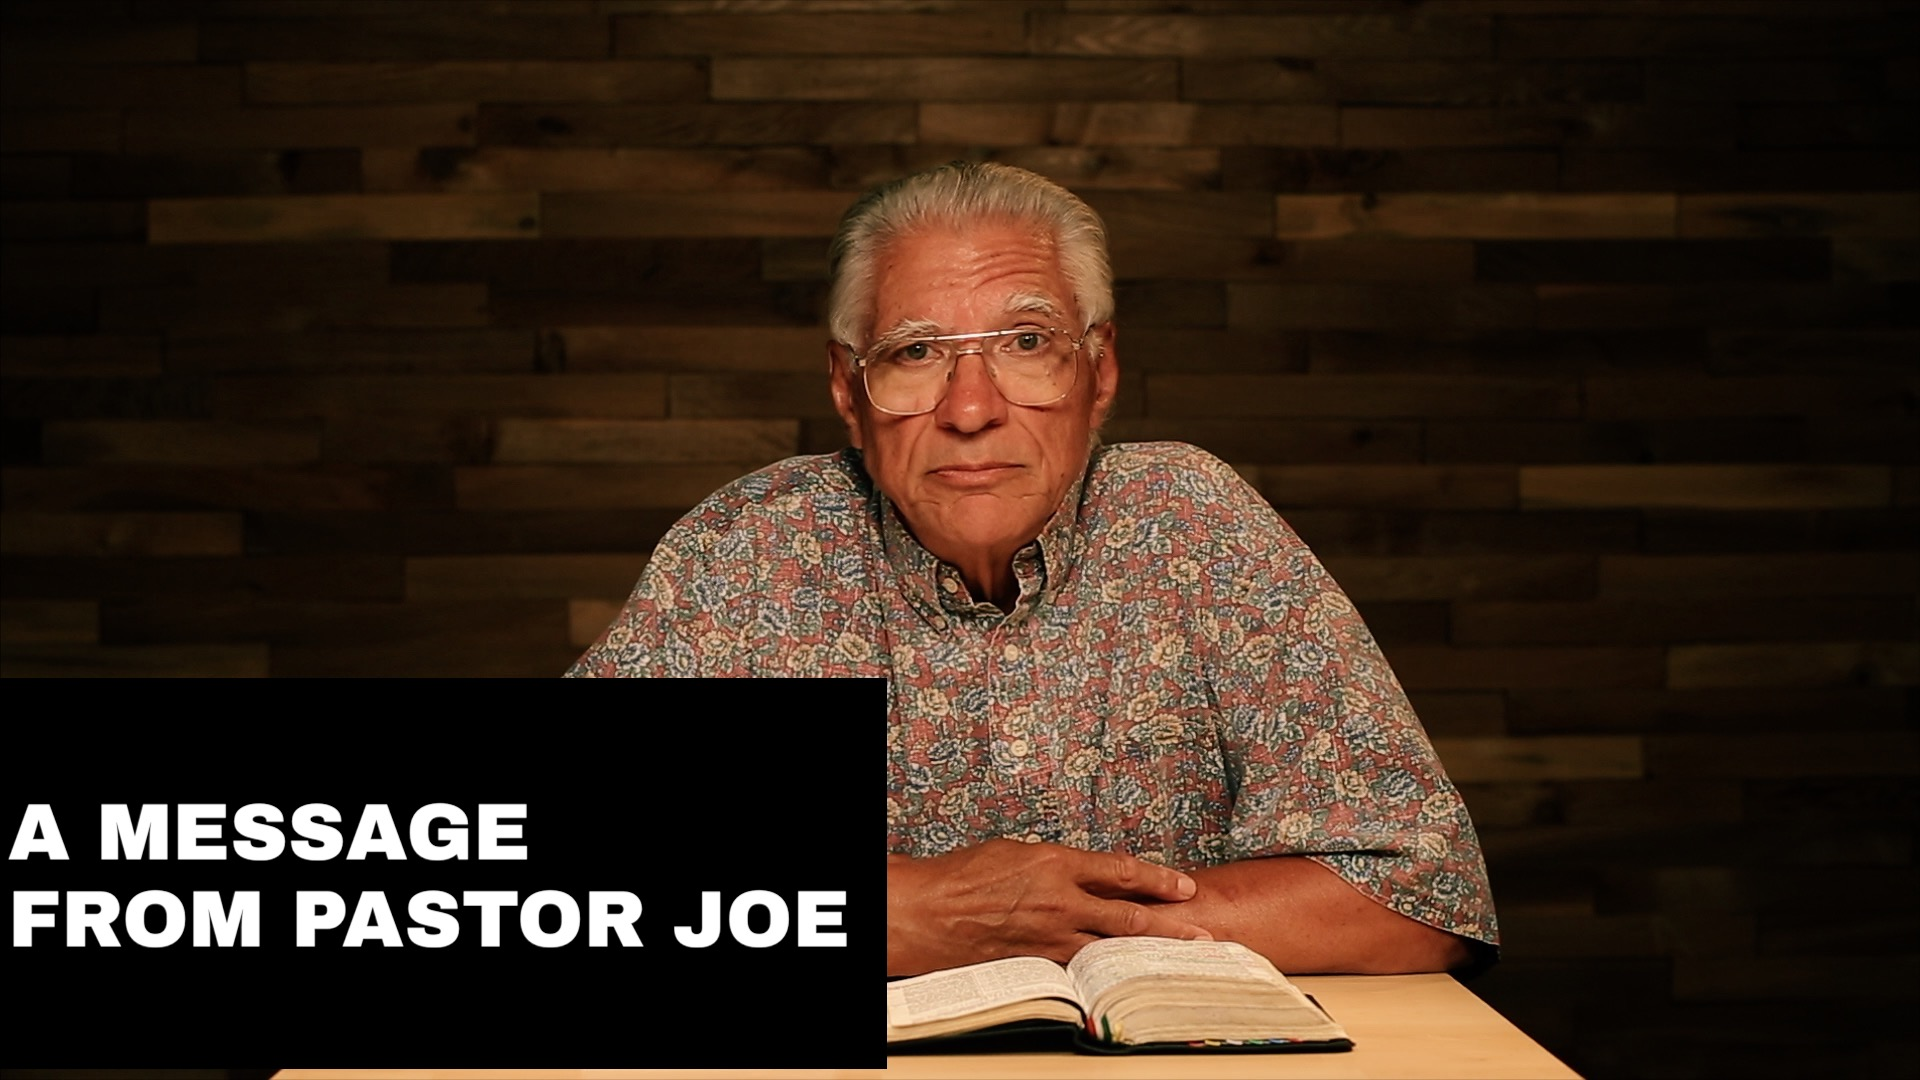 A Message from Pastor Joe